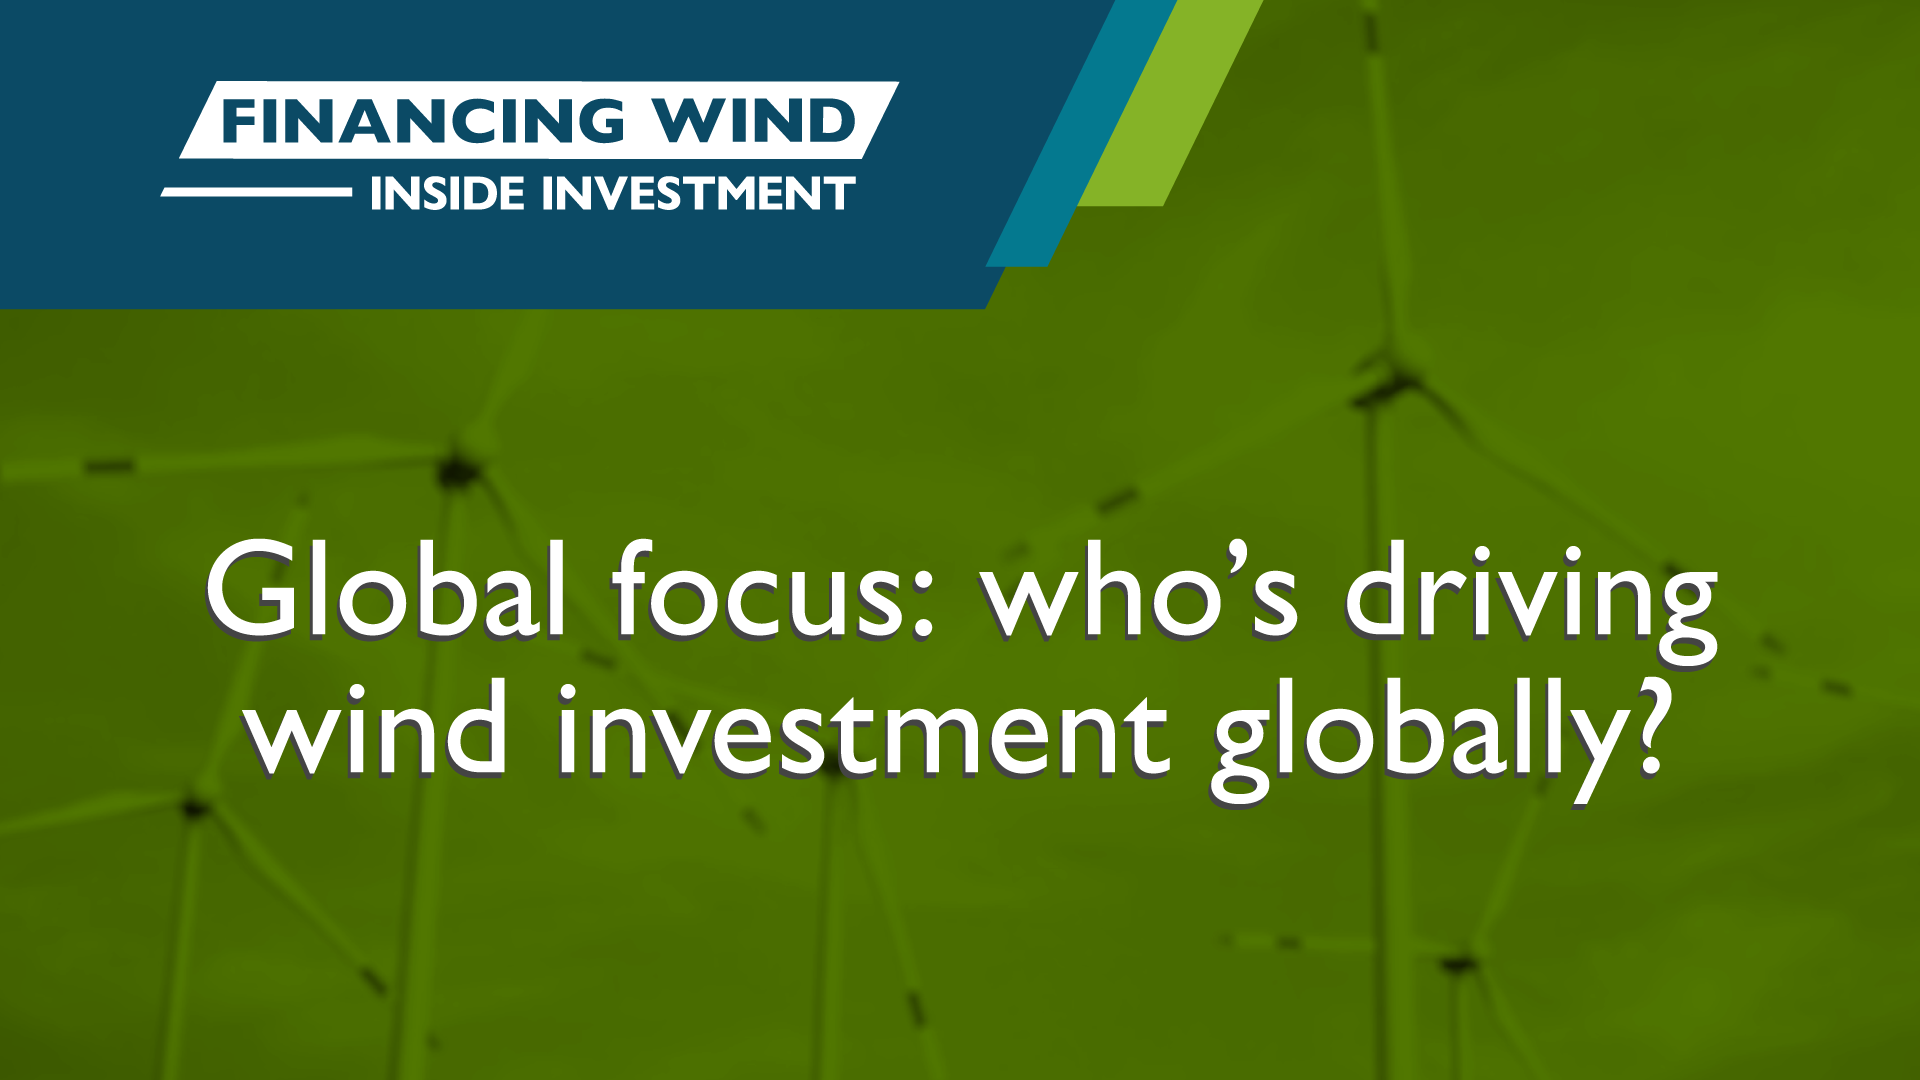 Global focus: who's driving wind investment globally?